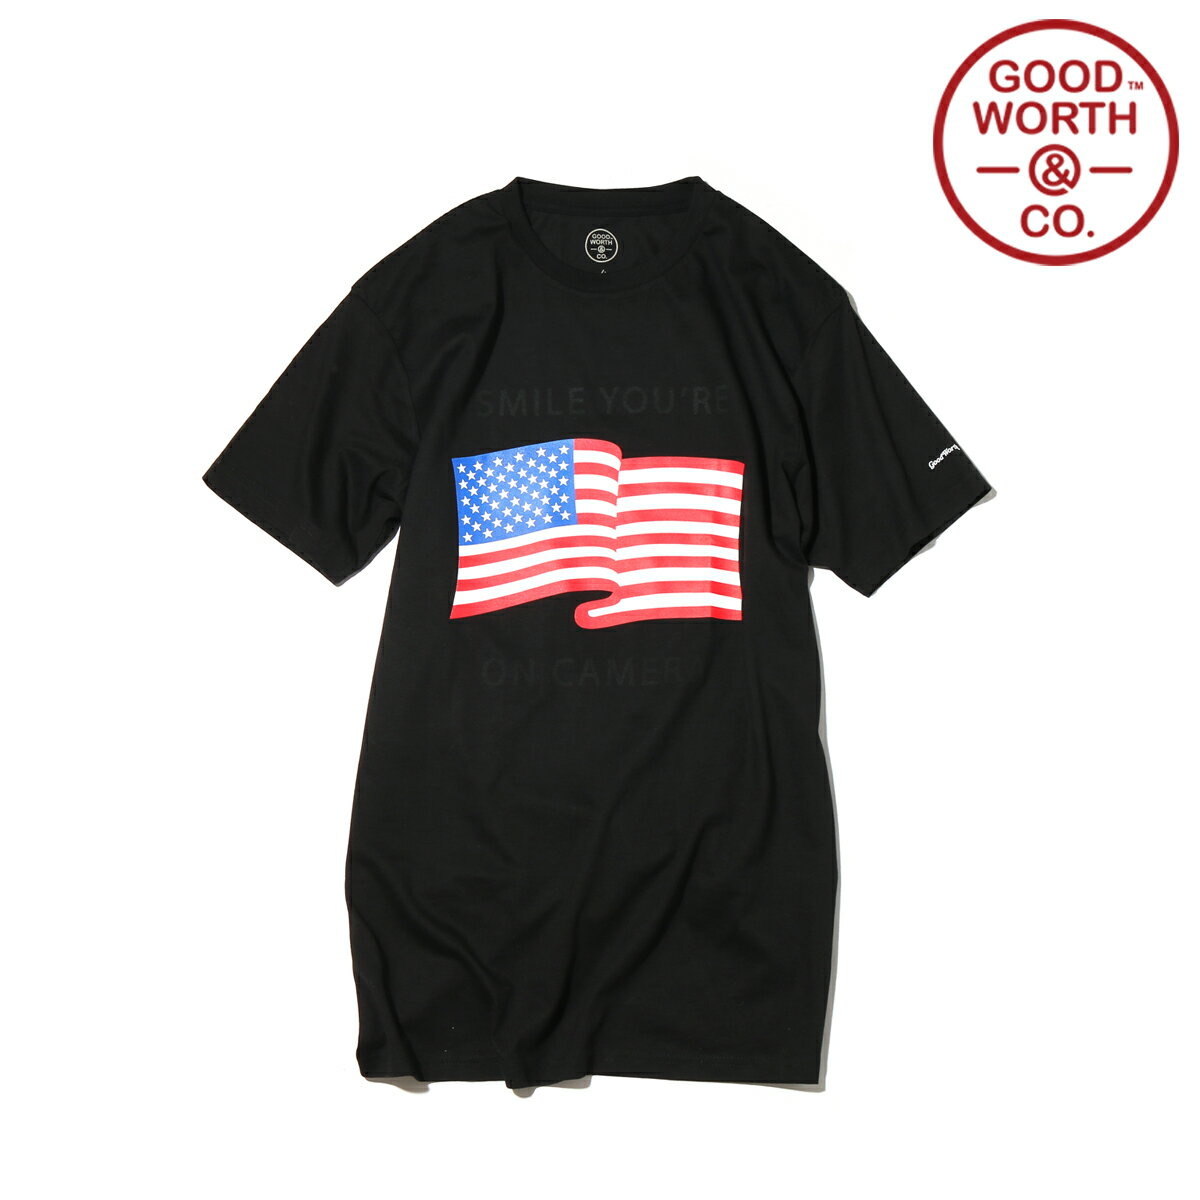 GOOD WORTH & CO. YOU'RE ON CAMERA T-SHIRT (3色展開) 【メンズサイズ】【17SP-I】【50】【sale0123】